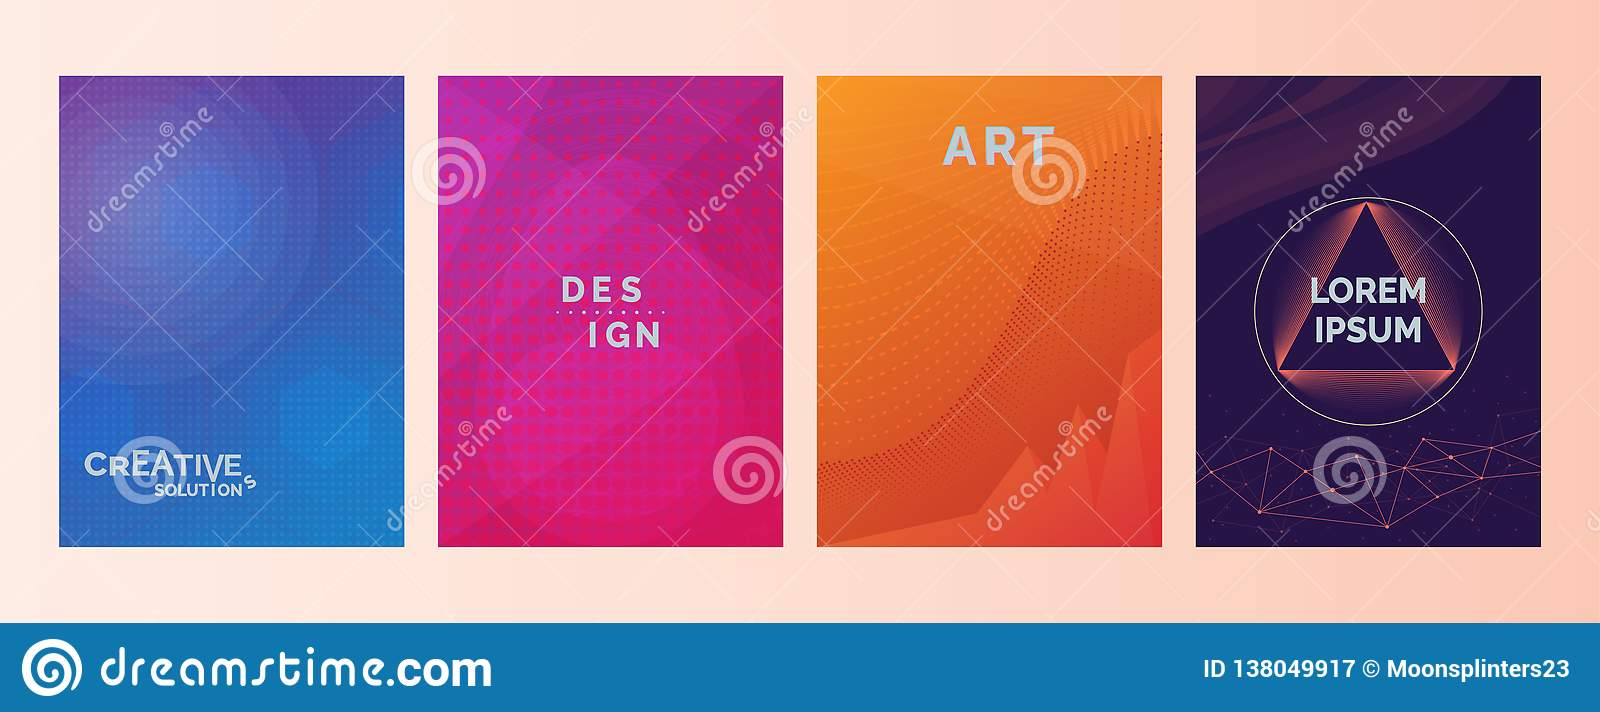 Creative solutions Design Art Lorem Ipsum text in abstract color gradient shapes background. Set of covers, brochures, flyer. Cool